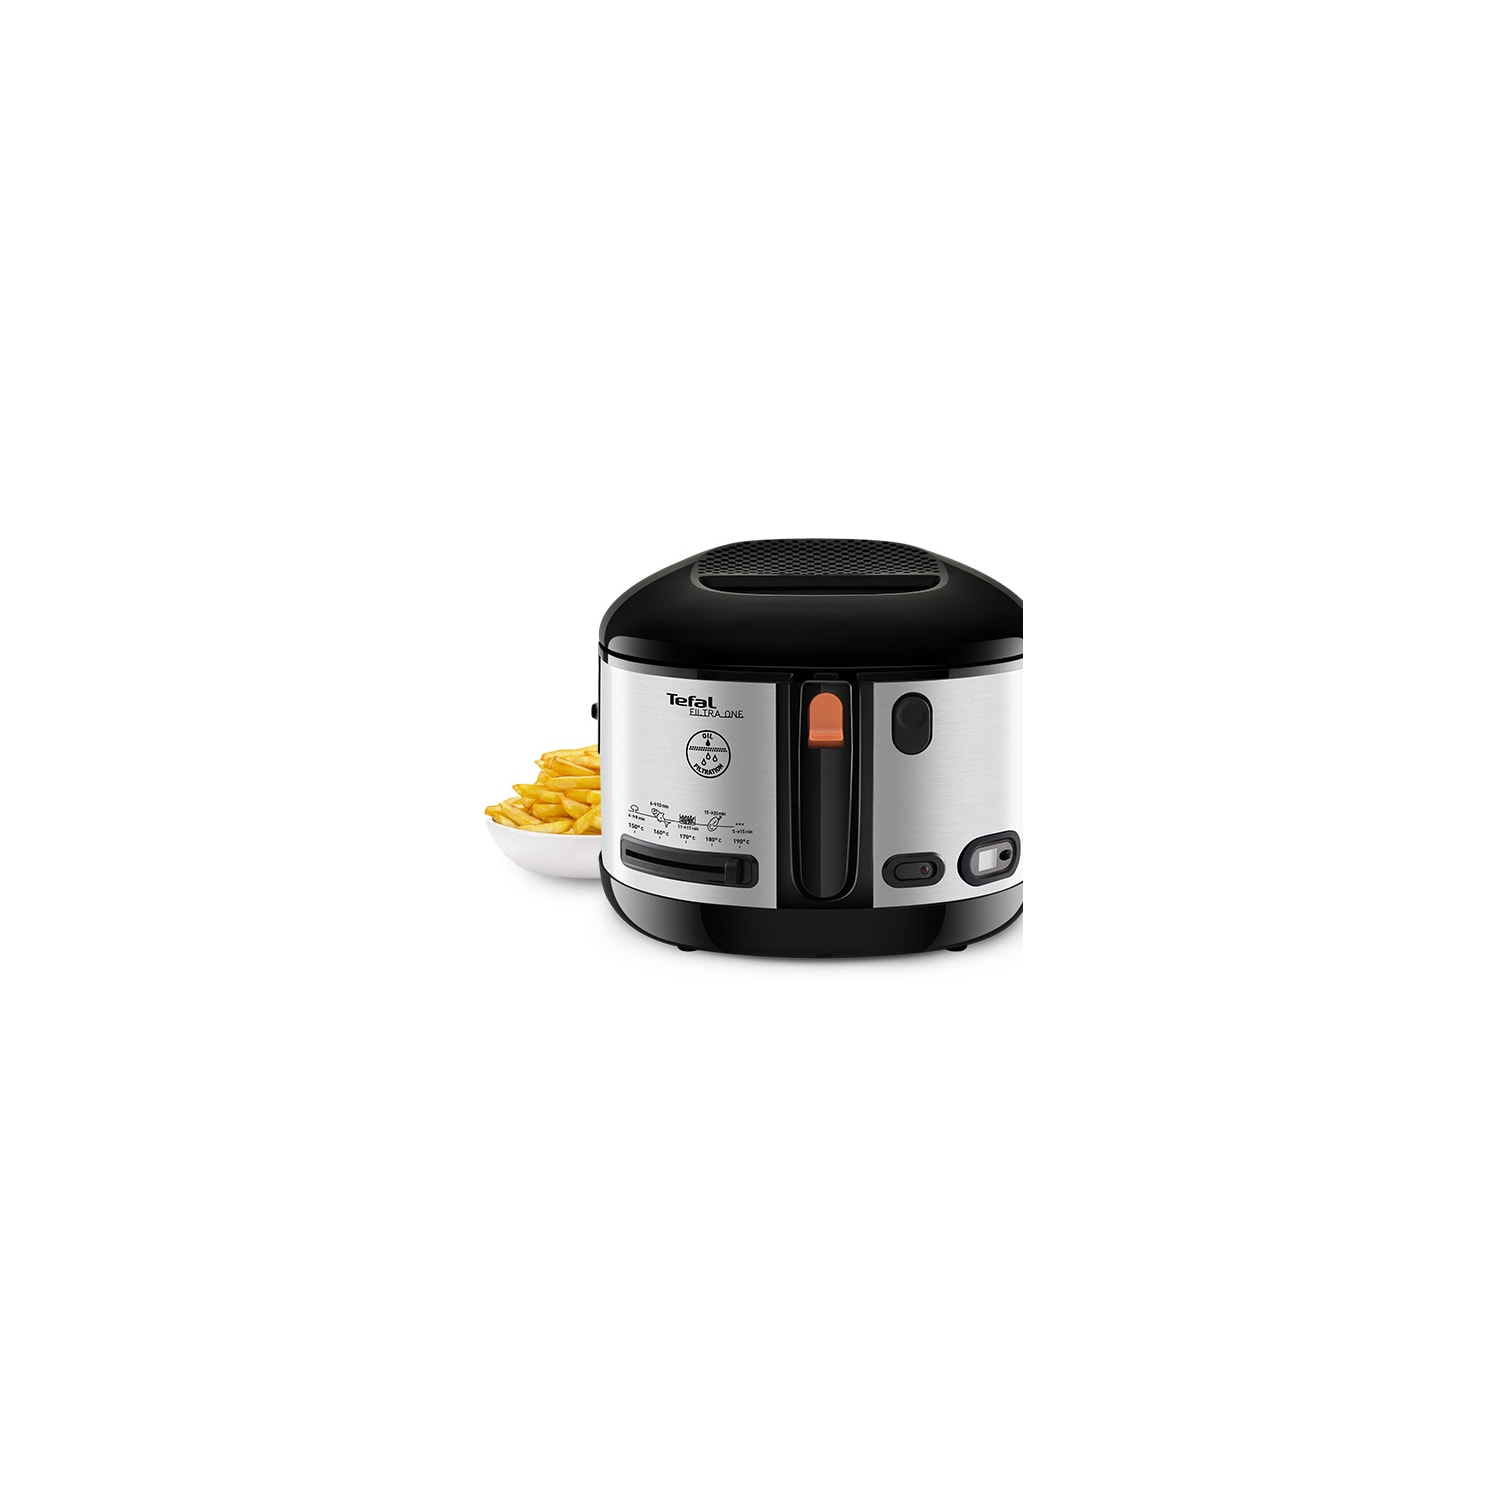 Frytownica TEFAL Filtra One  FF175D Inox